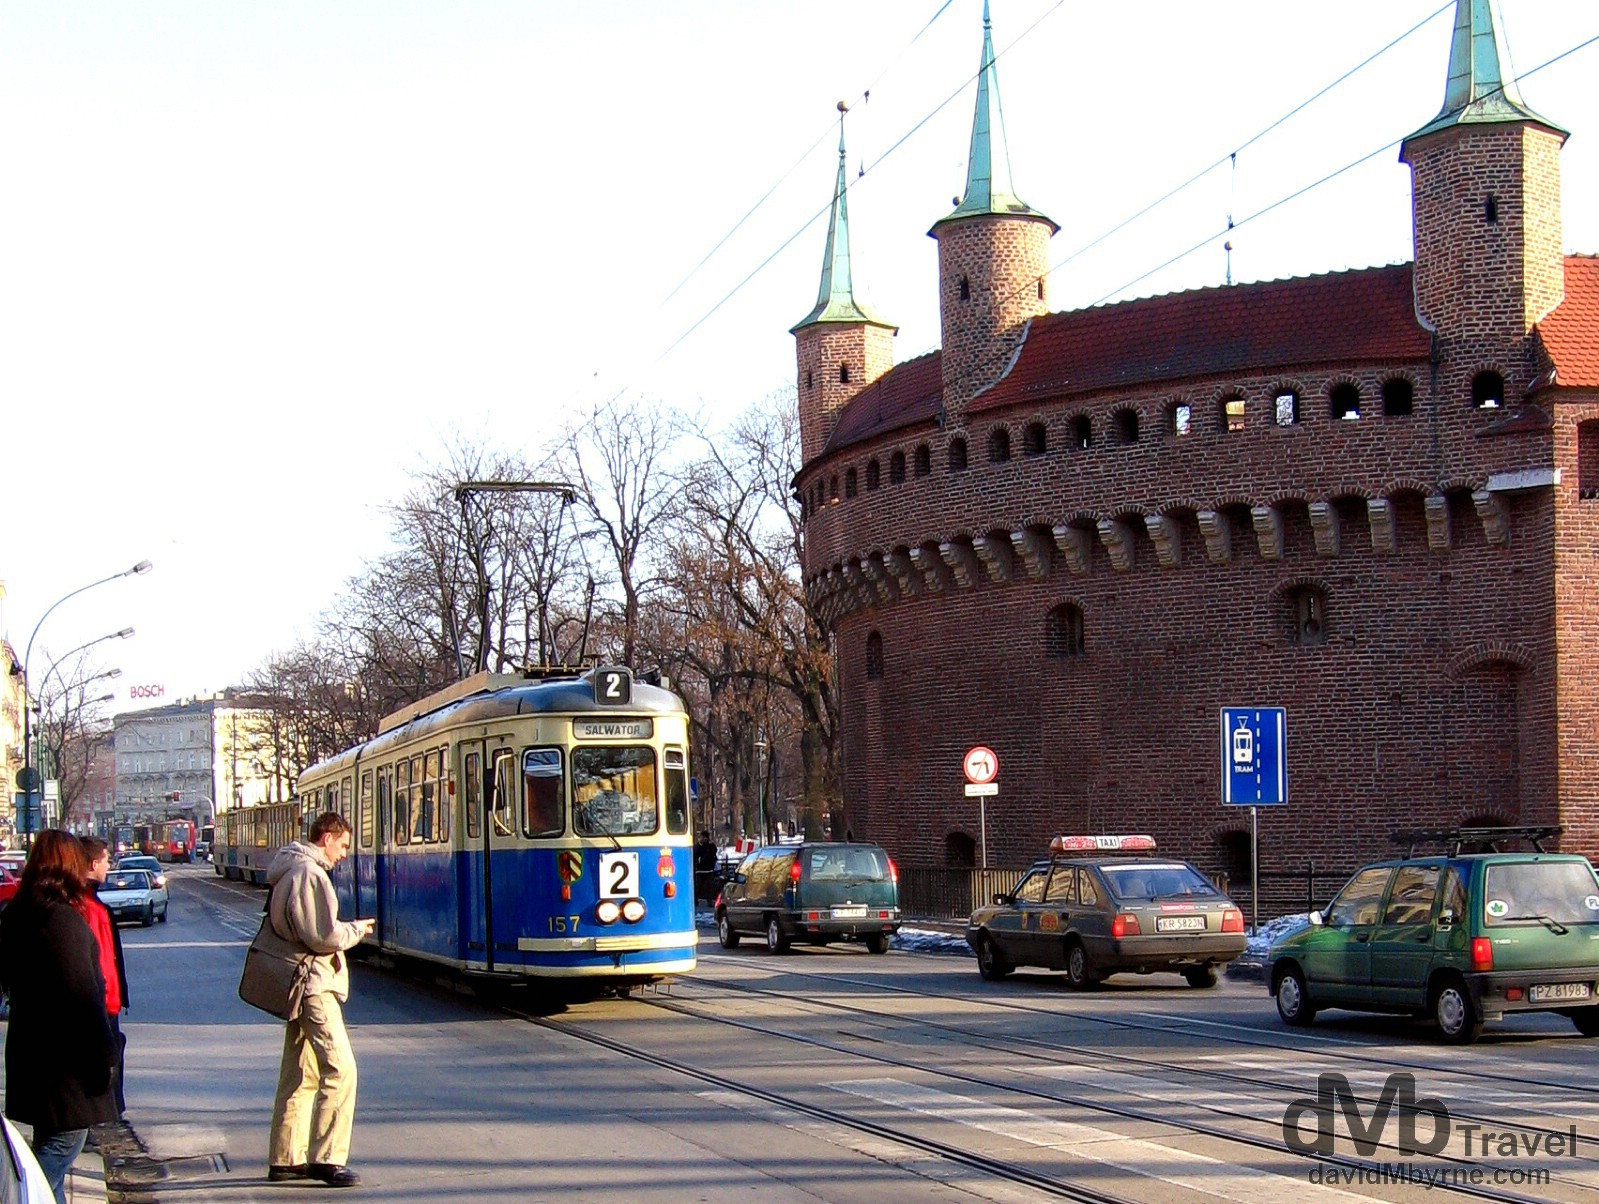 A tram plying the street fronting the circular Barbican, a defensive bastion built in 1498 as an outer defense to the city of Krakow in Poland. March 6, 2006.